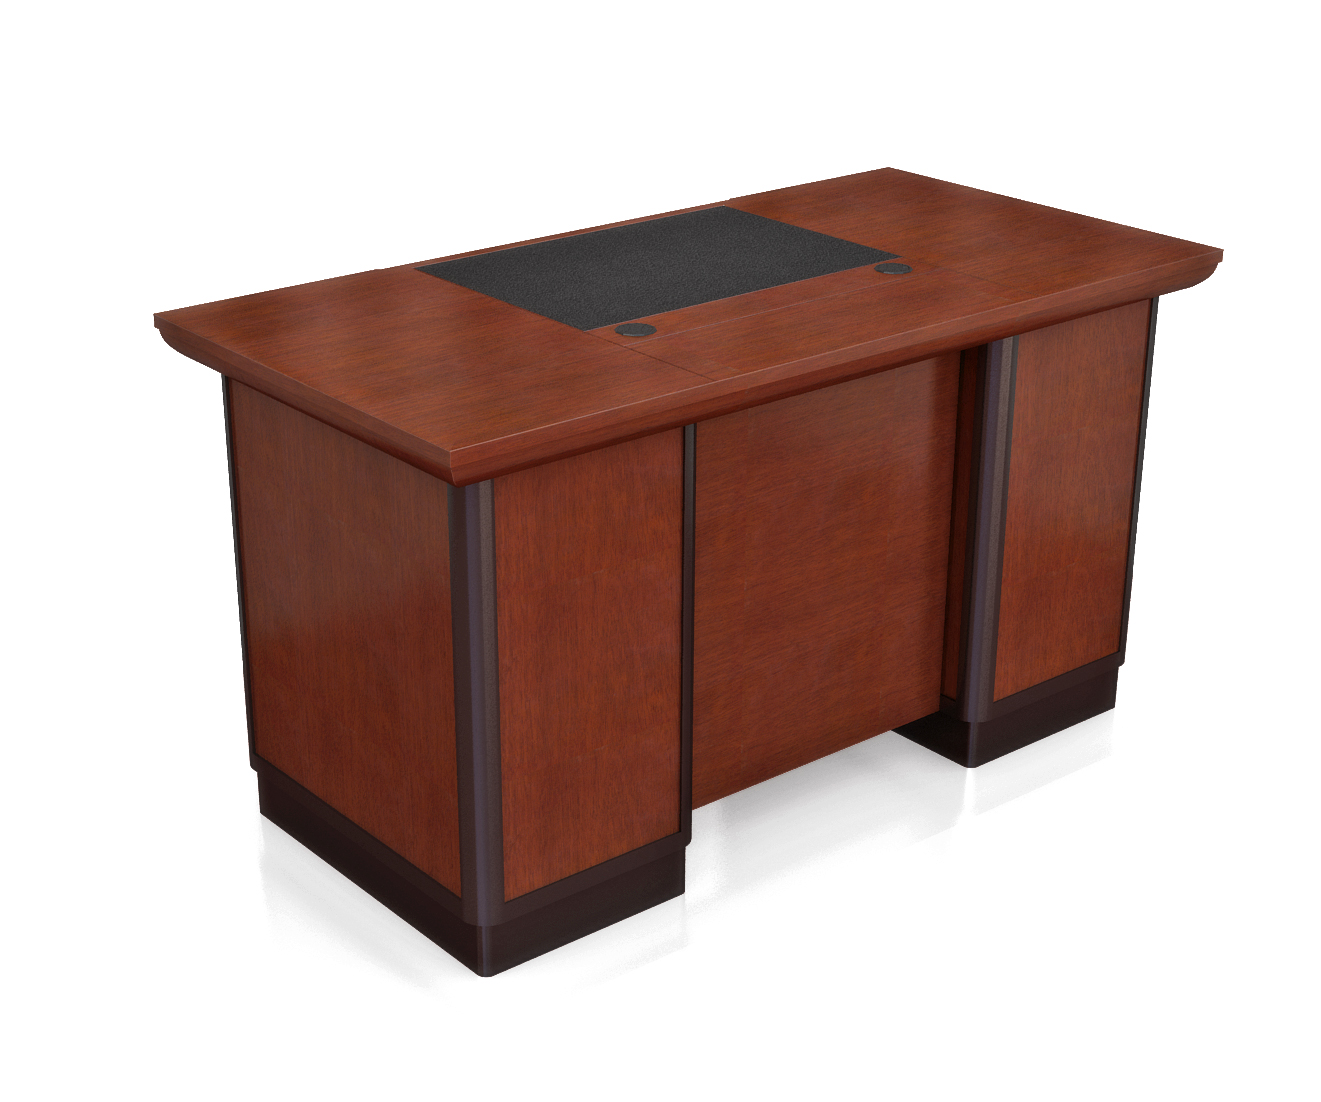 Office direct qld gcgb138 timber veneer furniture office direct qld Timber home office furniture brisbane